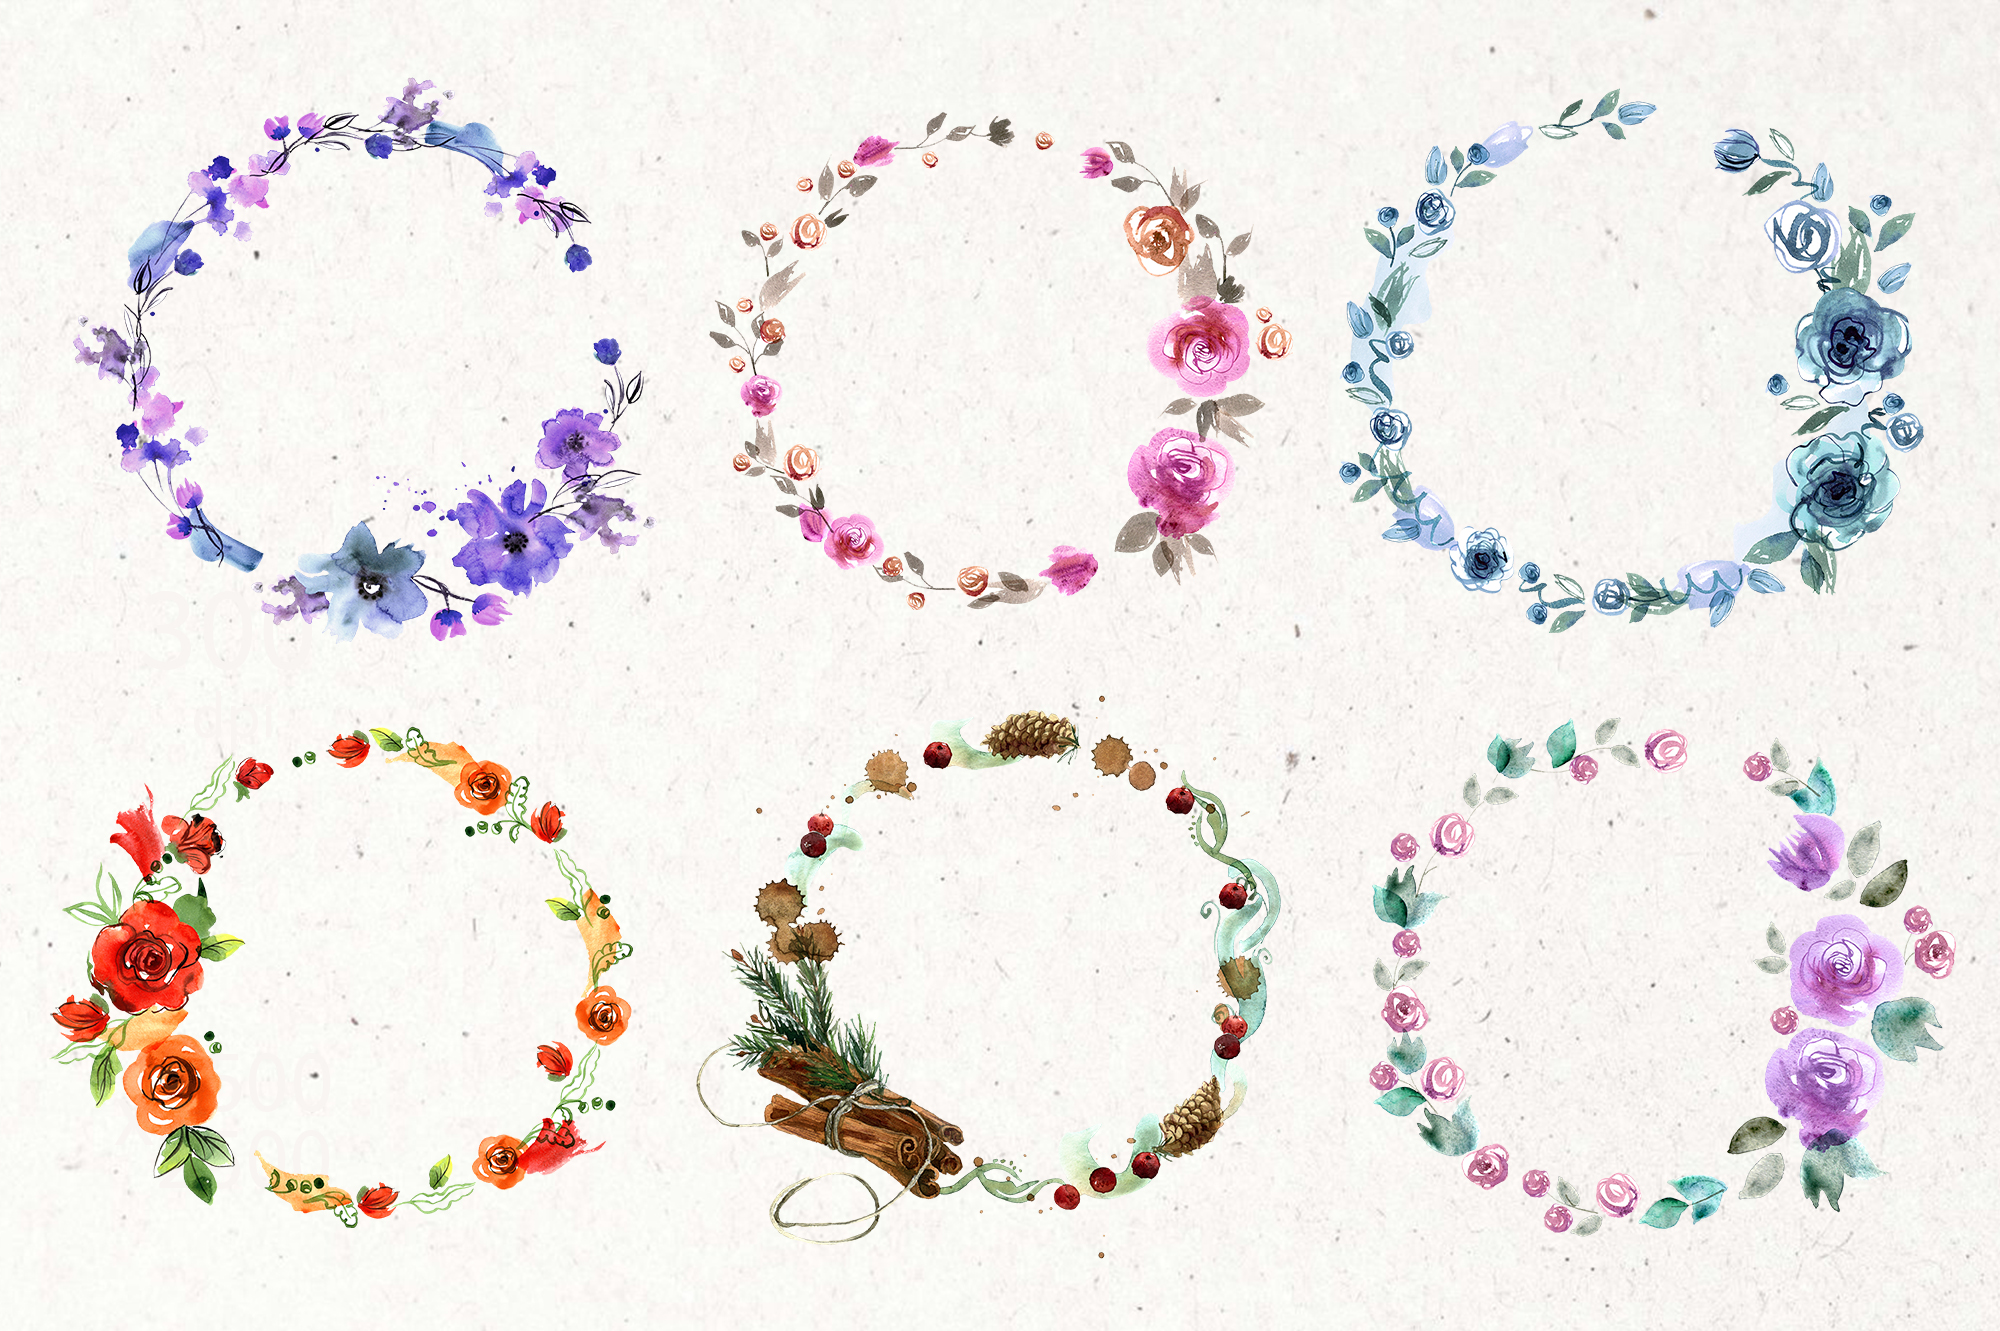 30 Watercolor Floral Wreaths example image 7